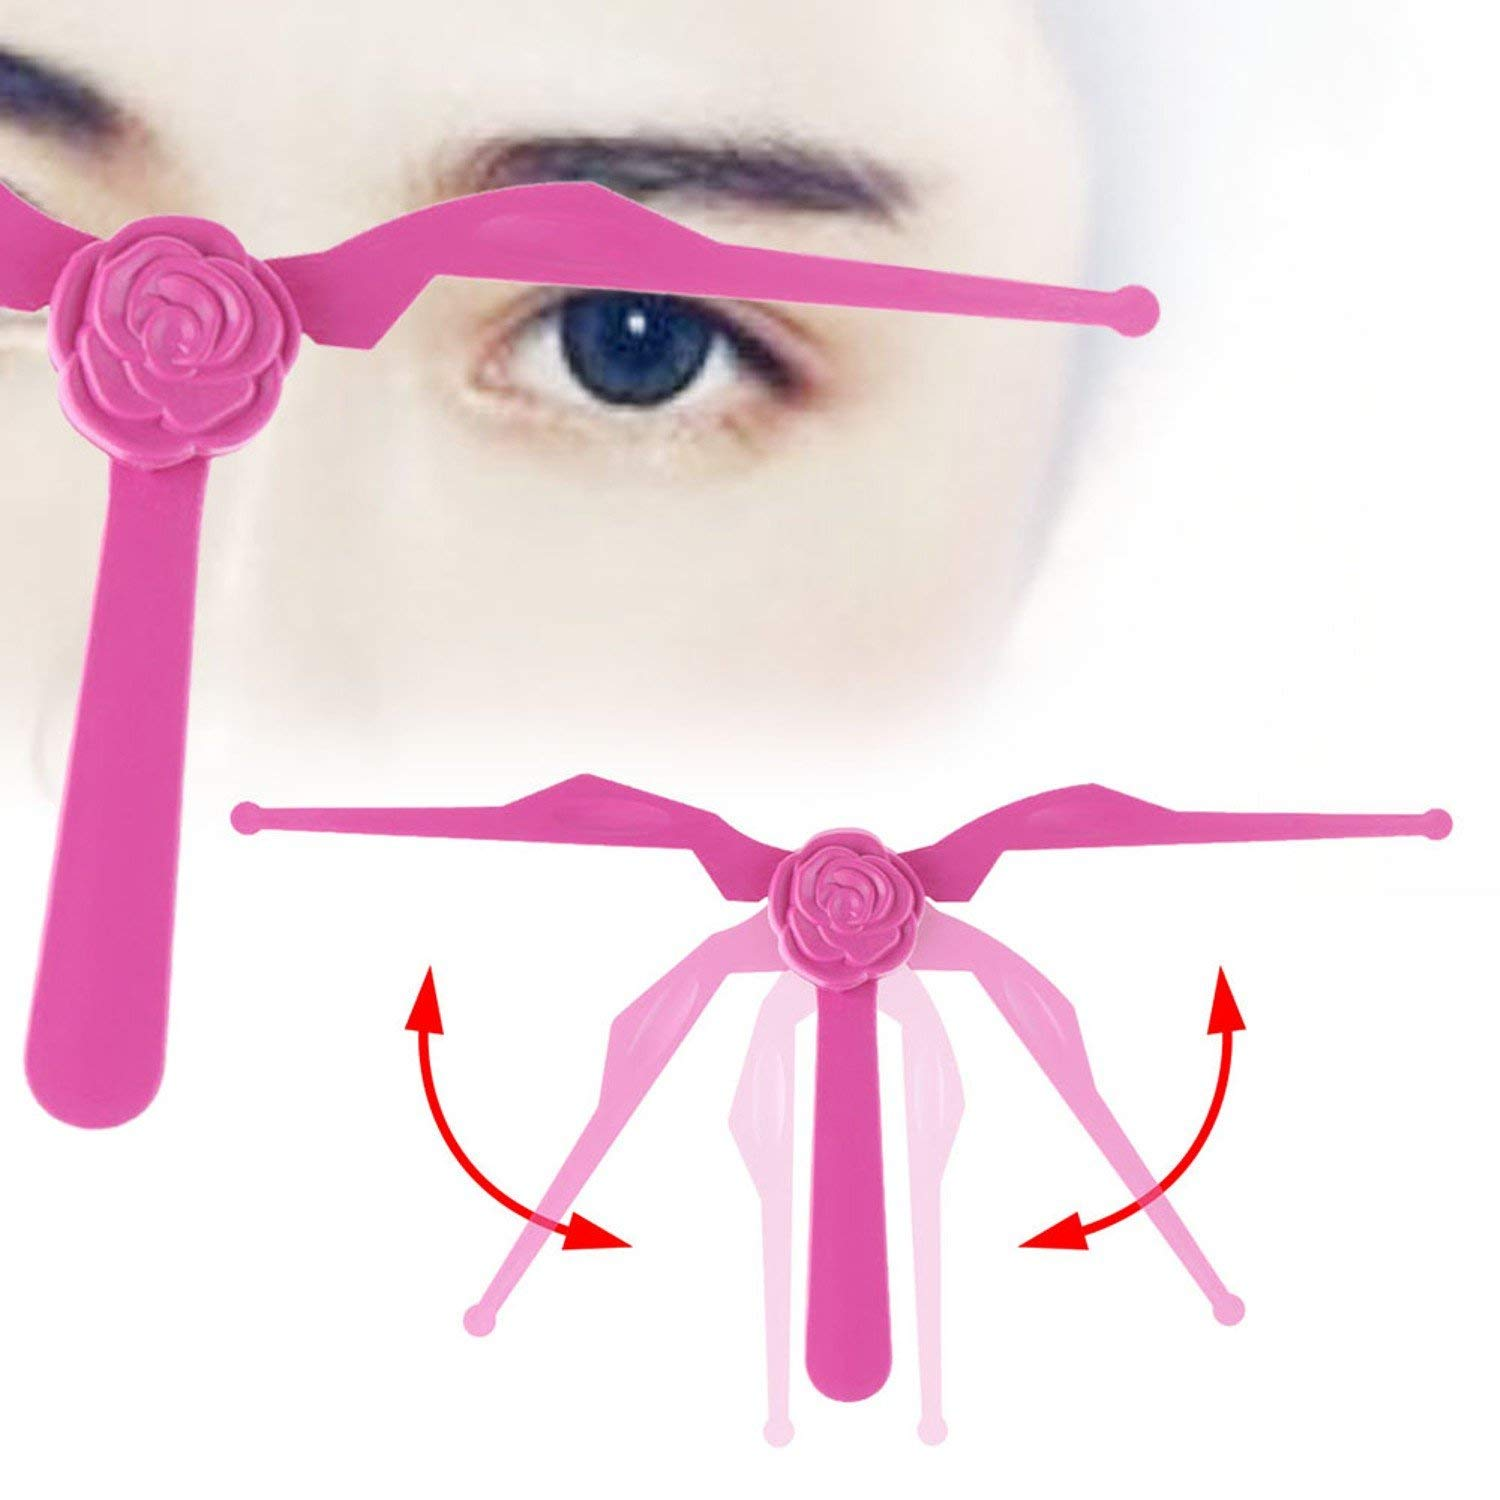 Cheap Eyebrow Plastic Find Eyebrow Plastic Deals On Line At Alibaba